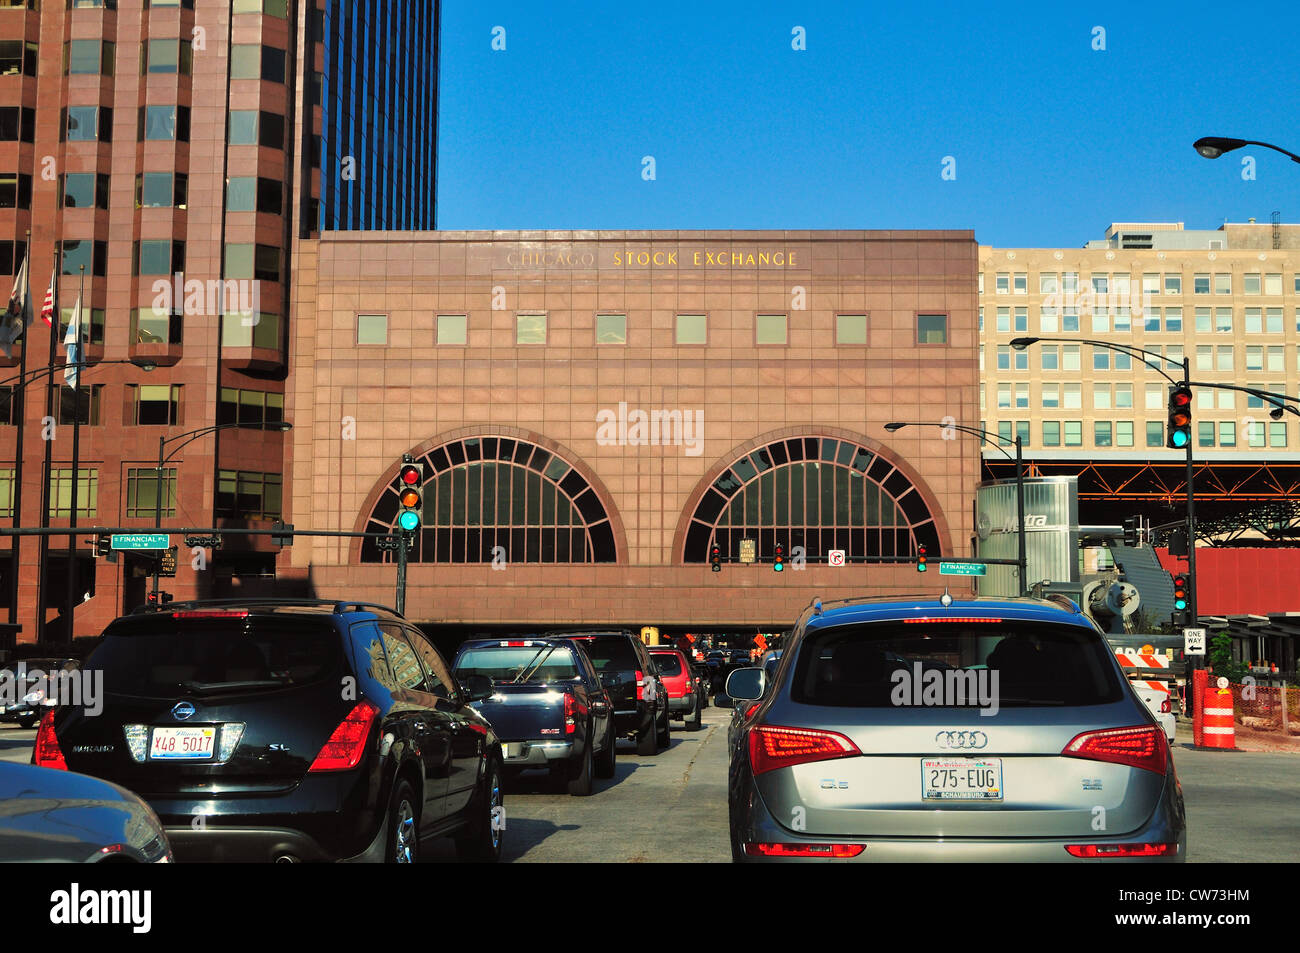 USA Illinois Chicago Heavy traffic on the inbound Eisenhower Expressway tunnel in the Chicago Stock Exchange Building. - Stock Image